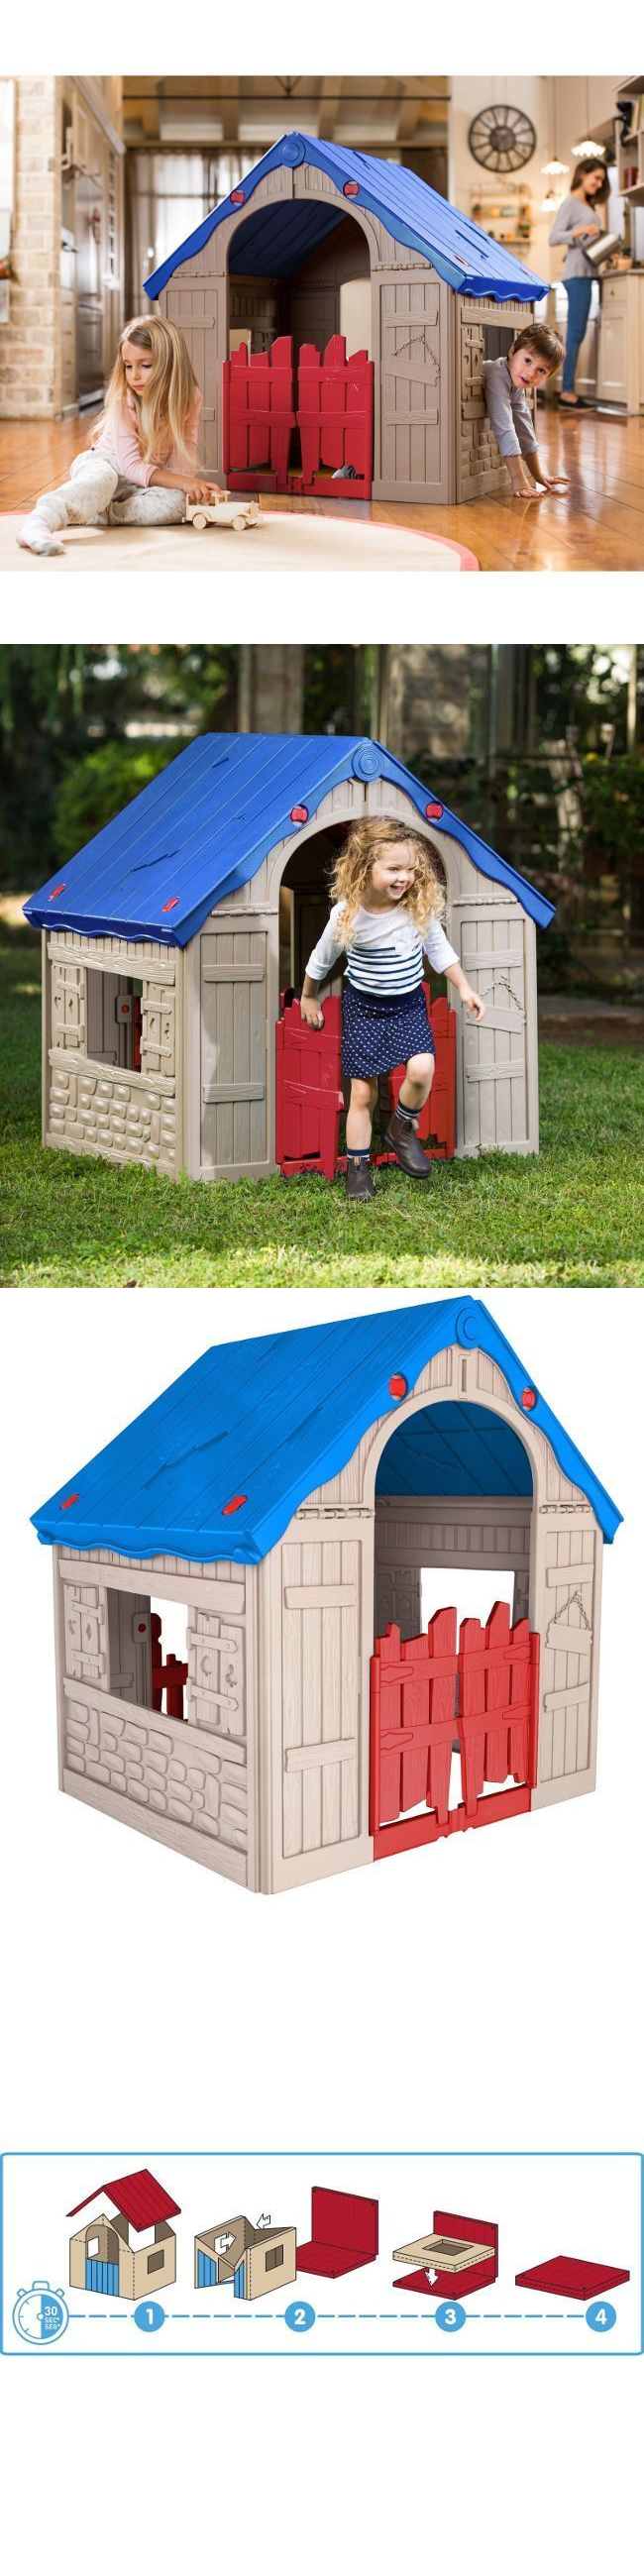 permanent playhouses 145995 play house for kids outdoor indoor